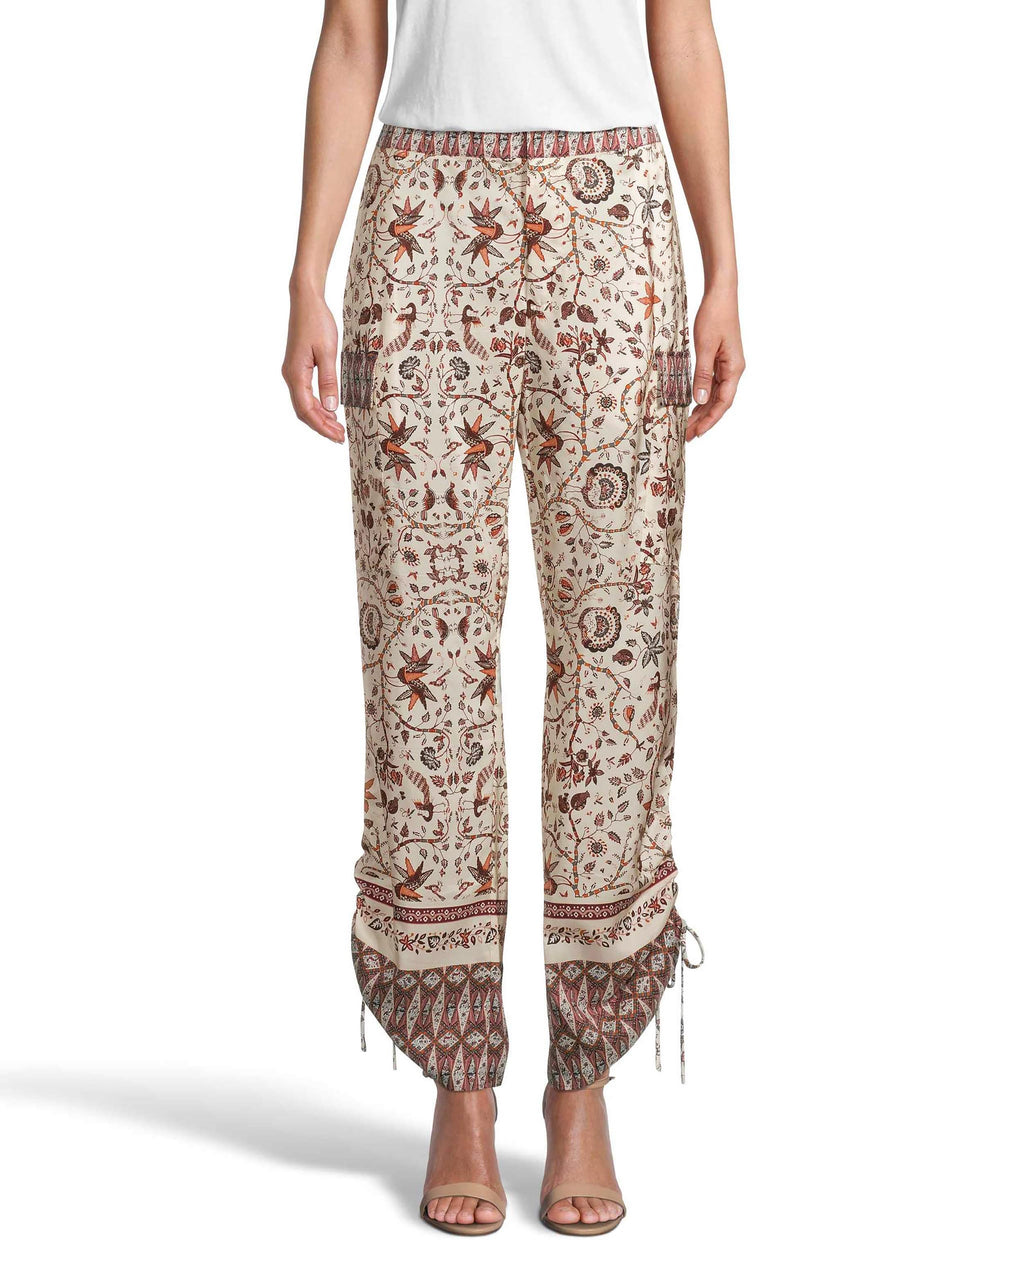 CP18628 - JAKARTA PRINT SILK CARGO PANTS - bottoms - pants - Designed in one of our best selling silhouettes, our classic cargo pants are updated in our new jakarta print for a resort update. These lightweight silk pants feature adjustable ruching and pockets on the side. Add 1 line break Stylist Tip: Pair with the matching silk jakarta top.